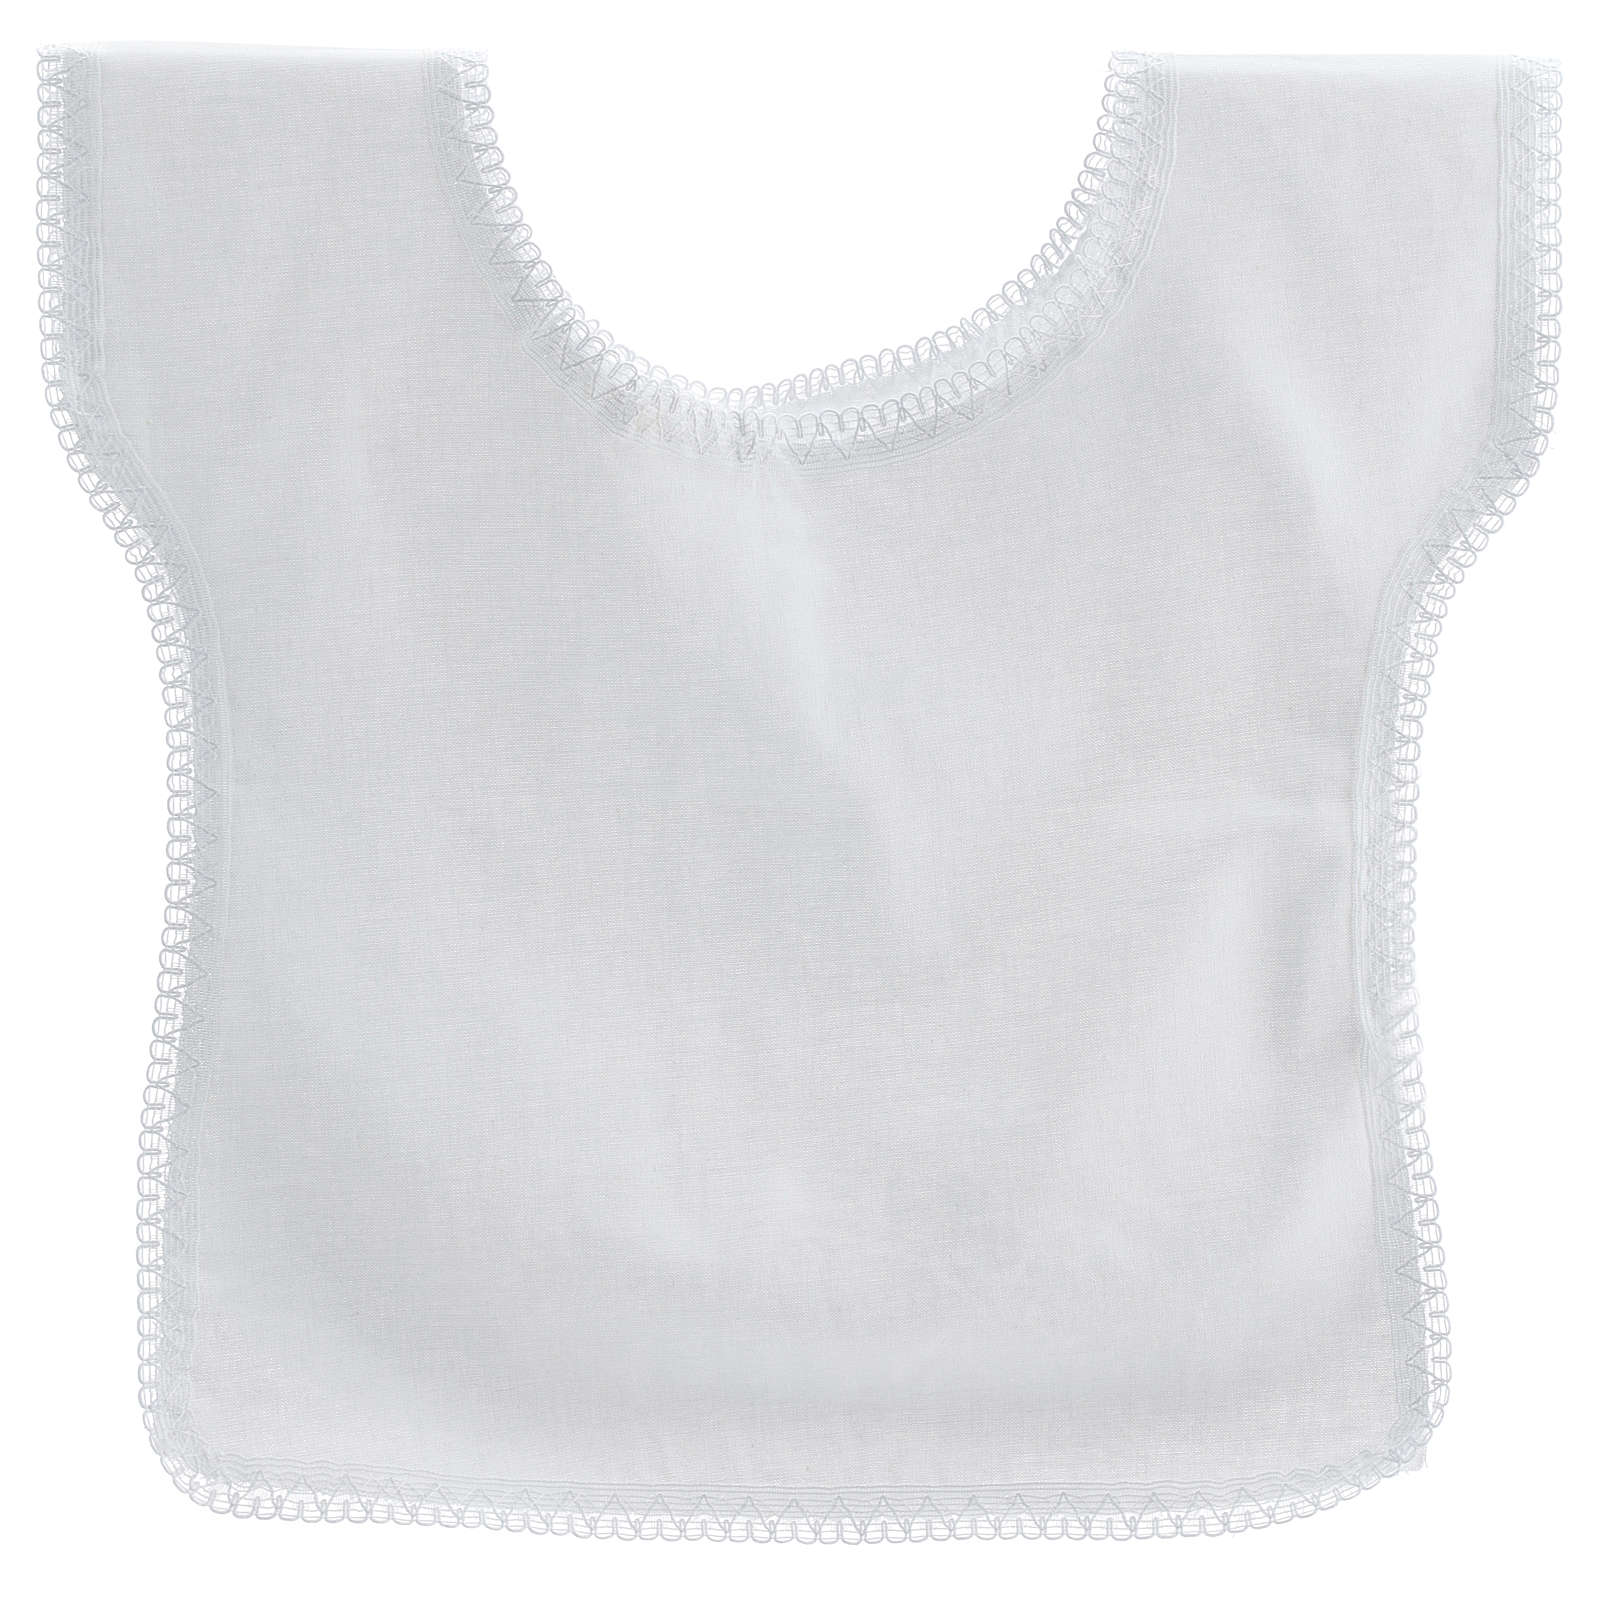 Baptismal shirt with dove 100% cotton 4